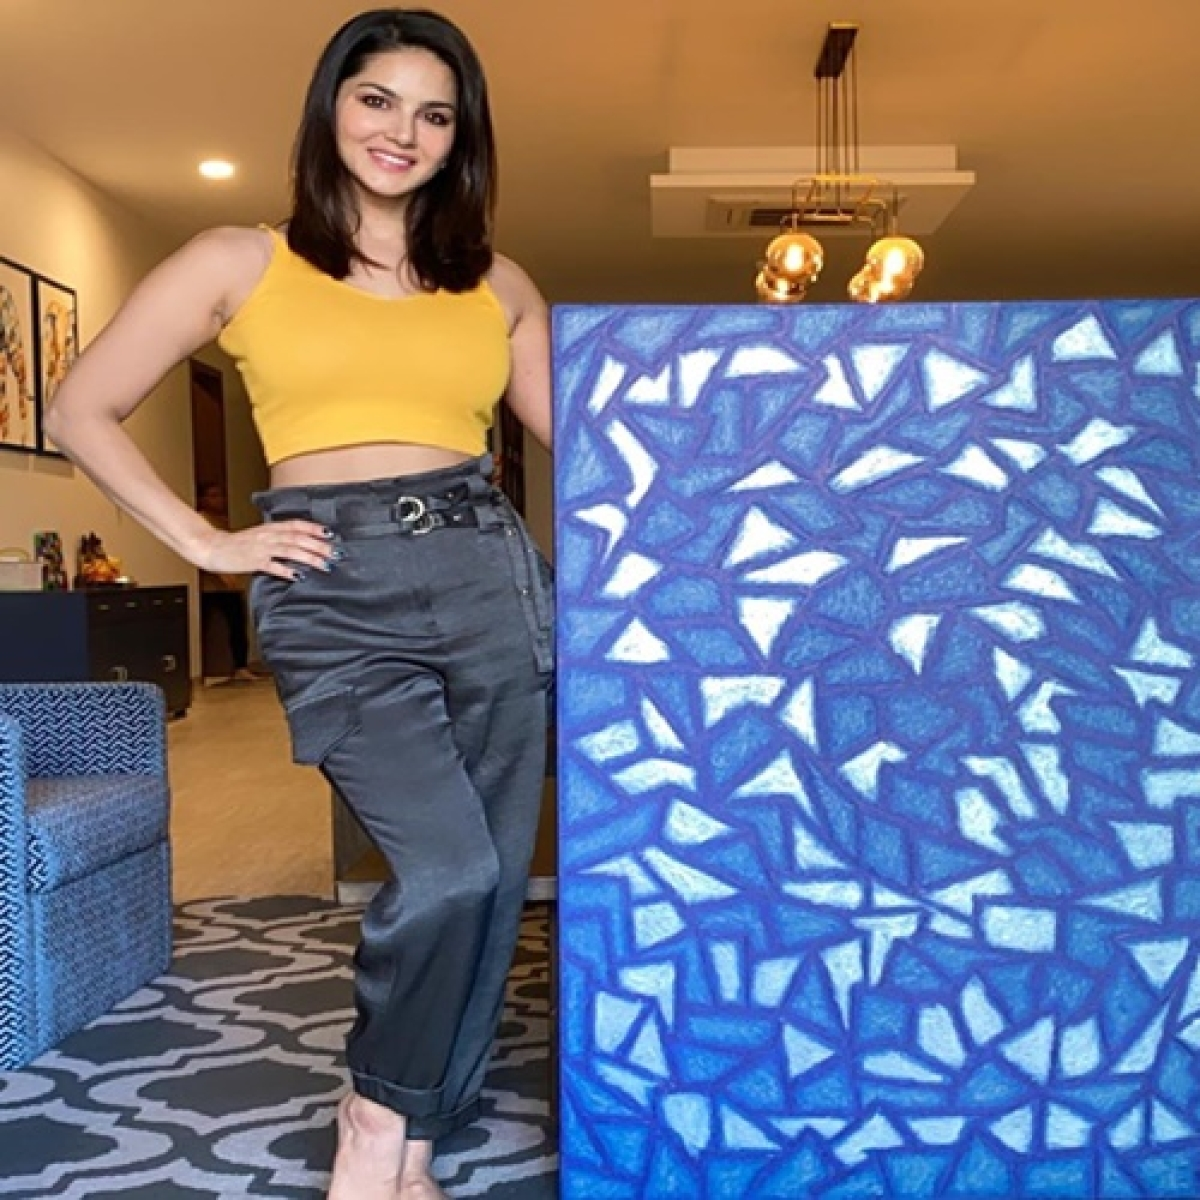 Sunny Leone reveals her 'lockdown piece of art' titled as 'broken glass'